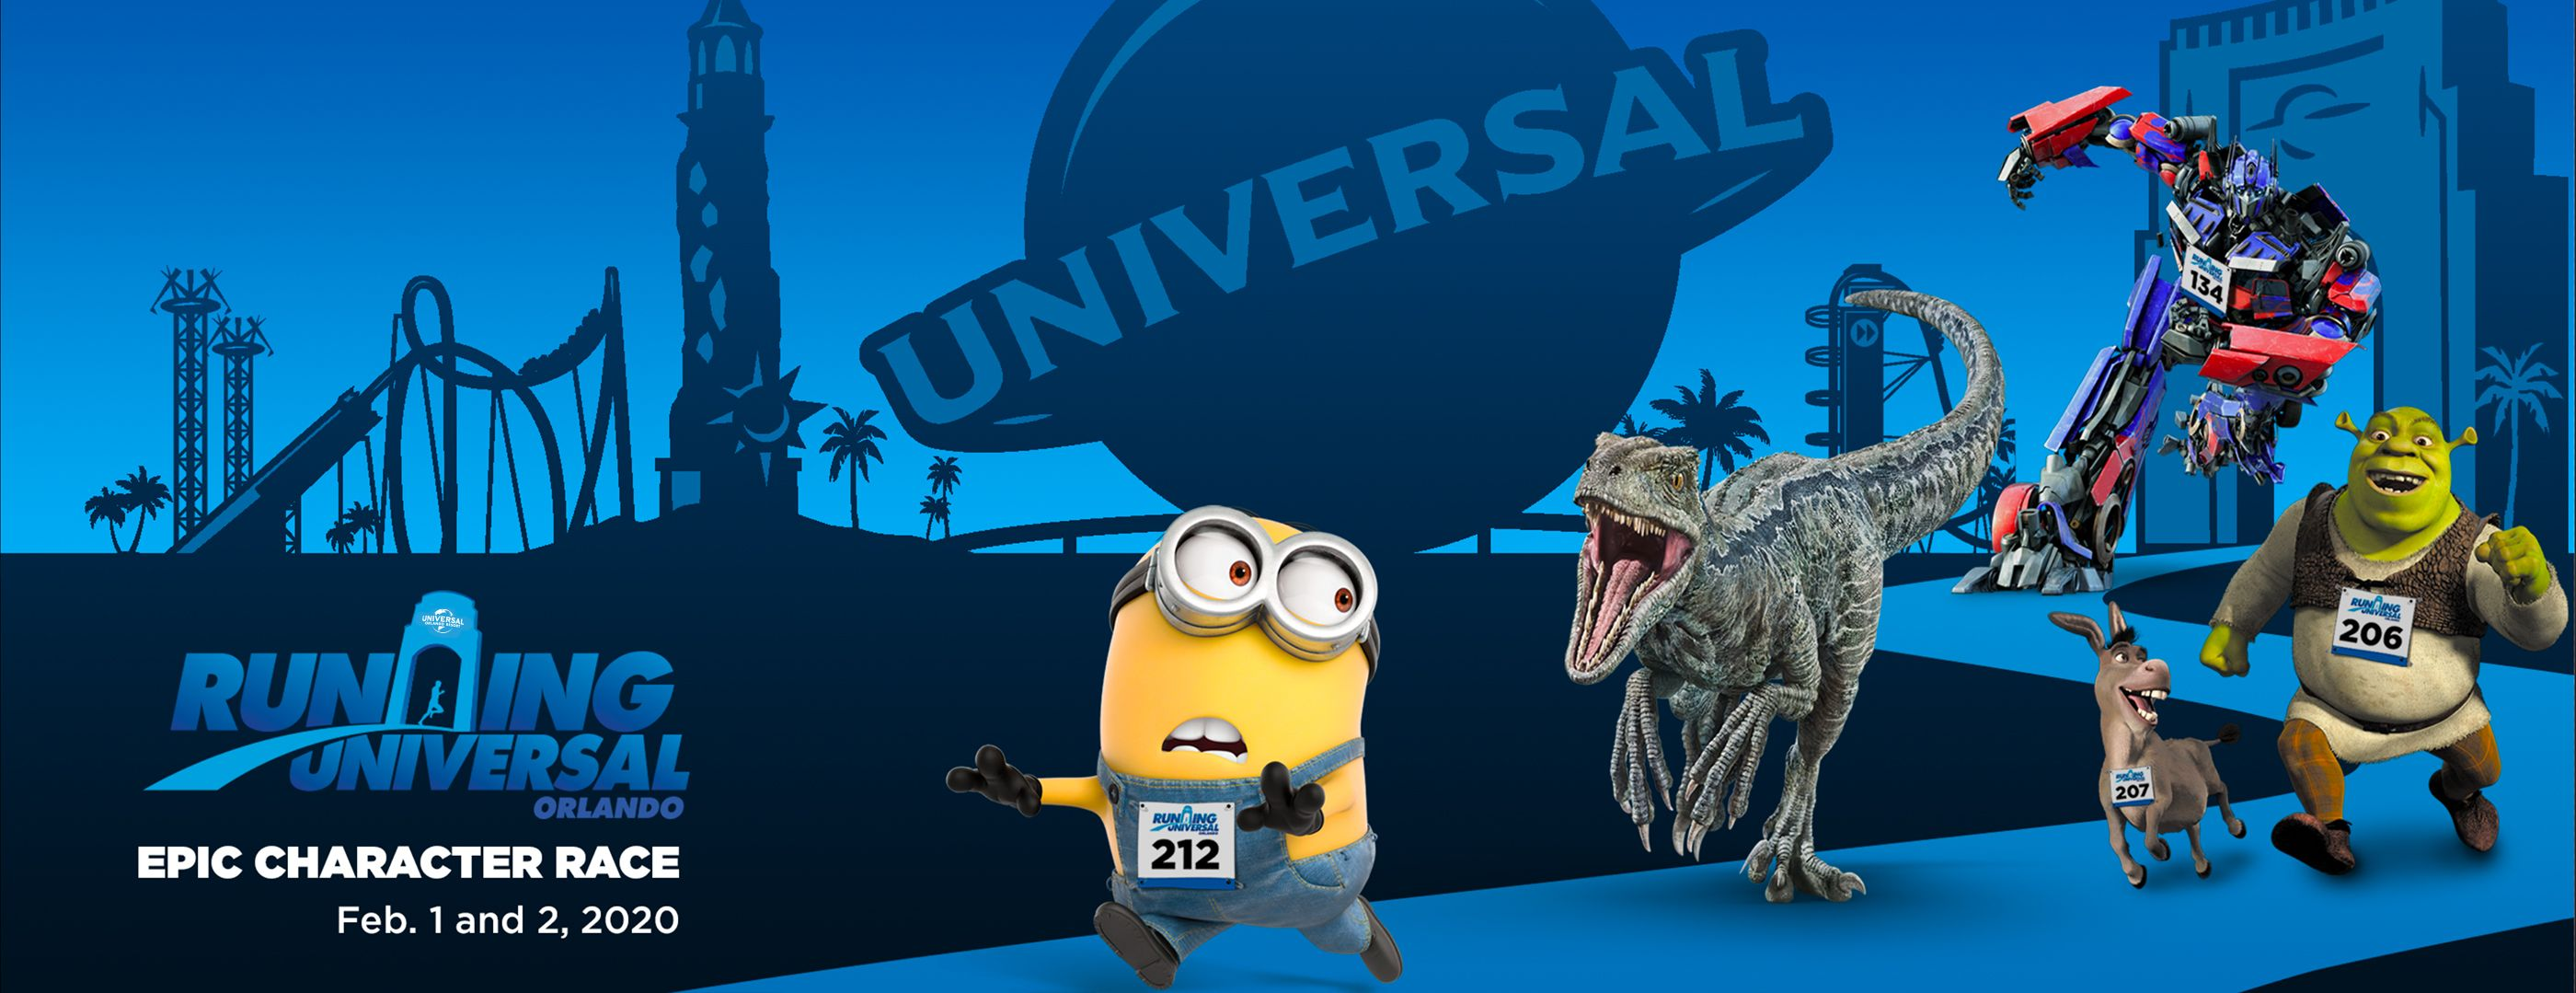 Universal Studios Prepares for an Epic Race Weekend in February